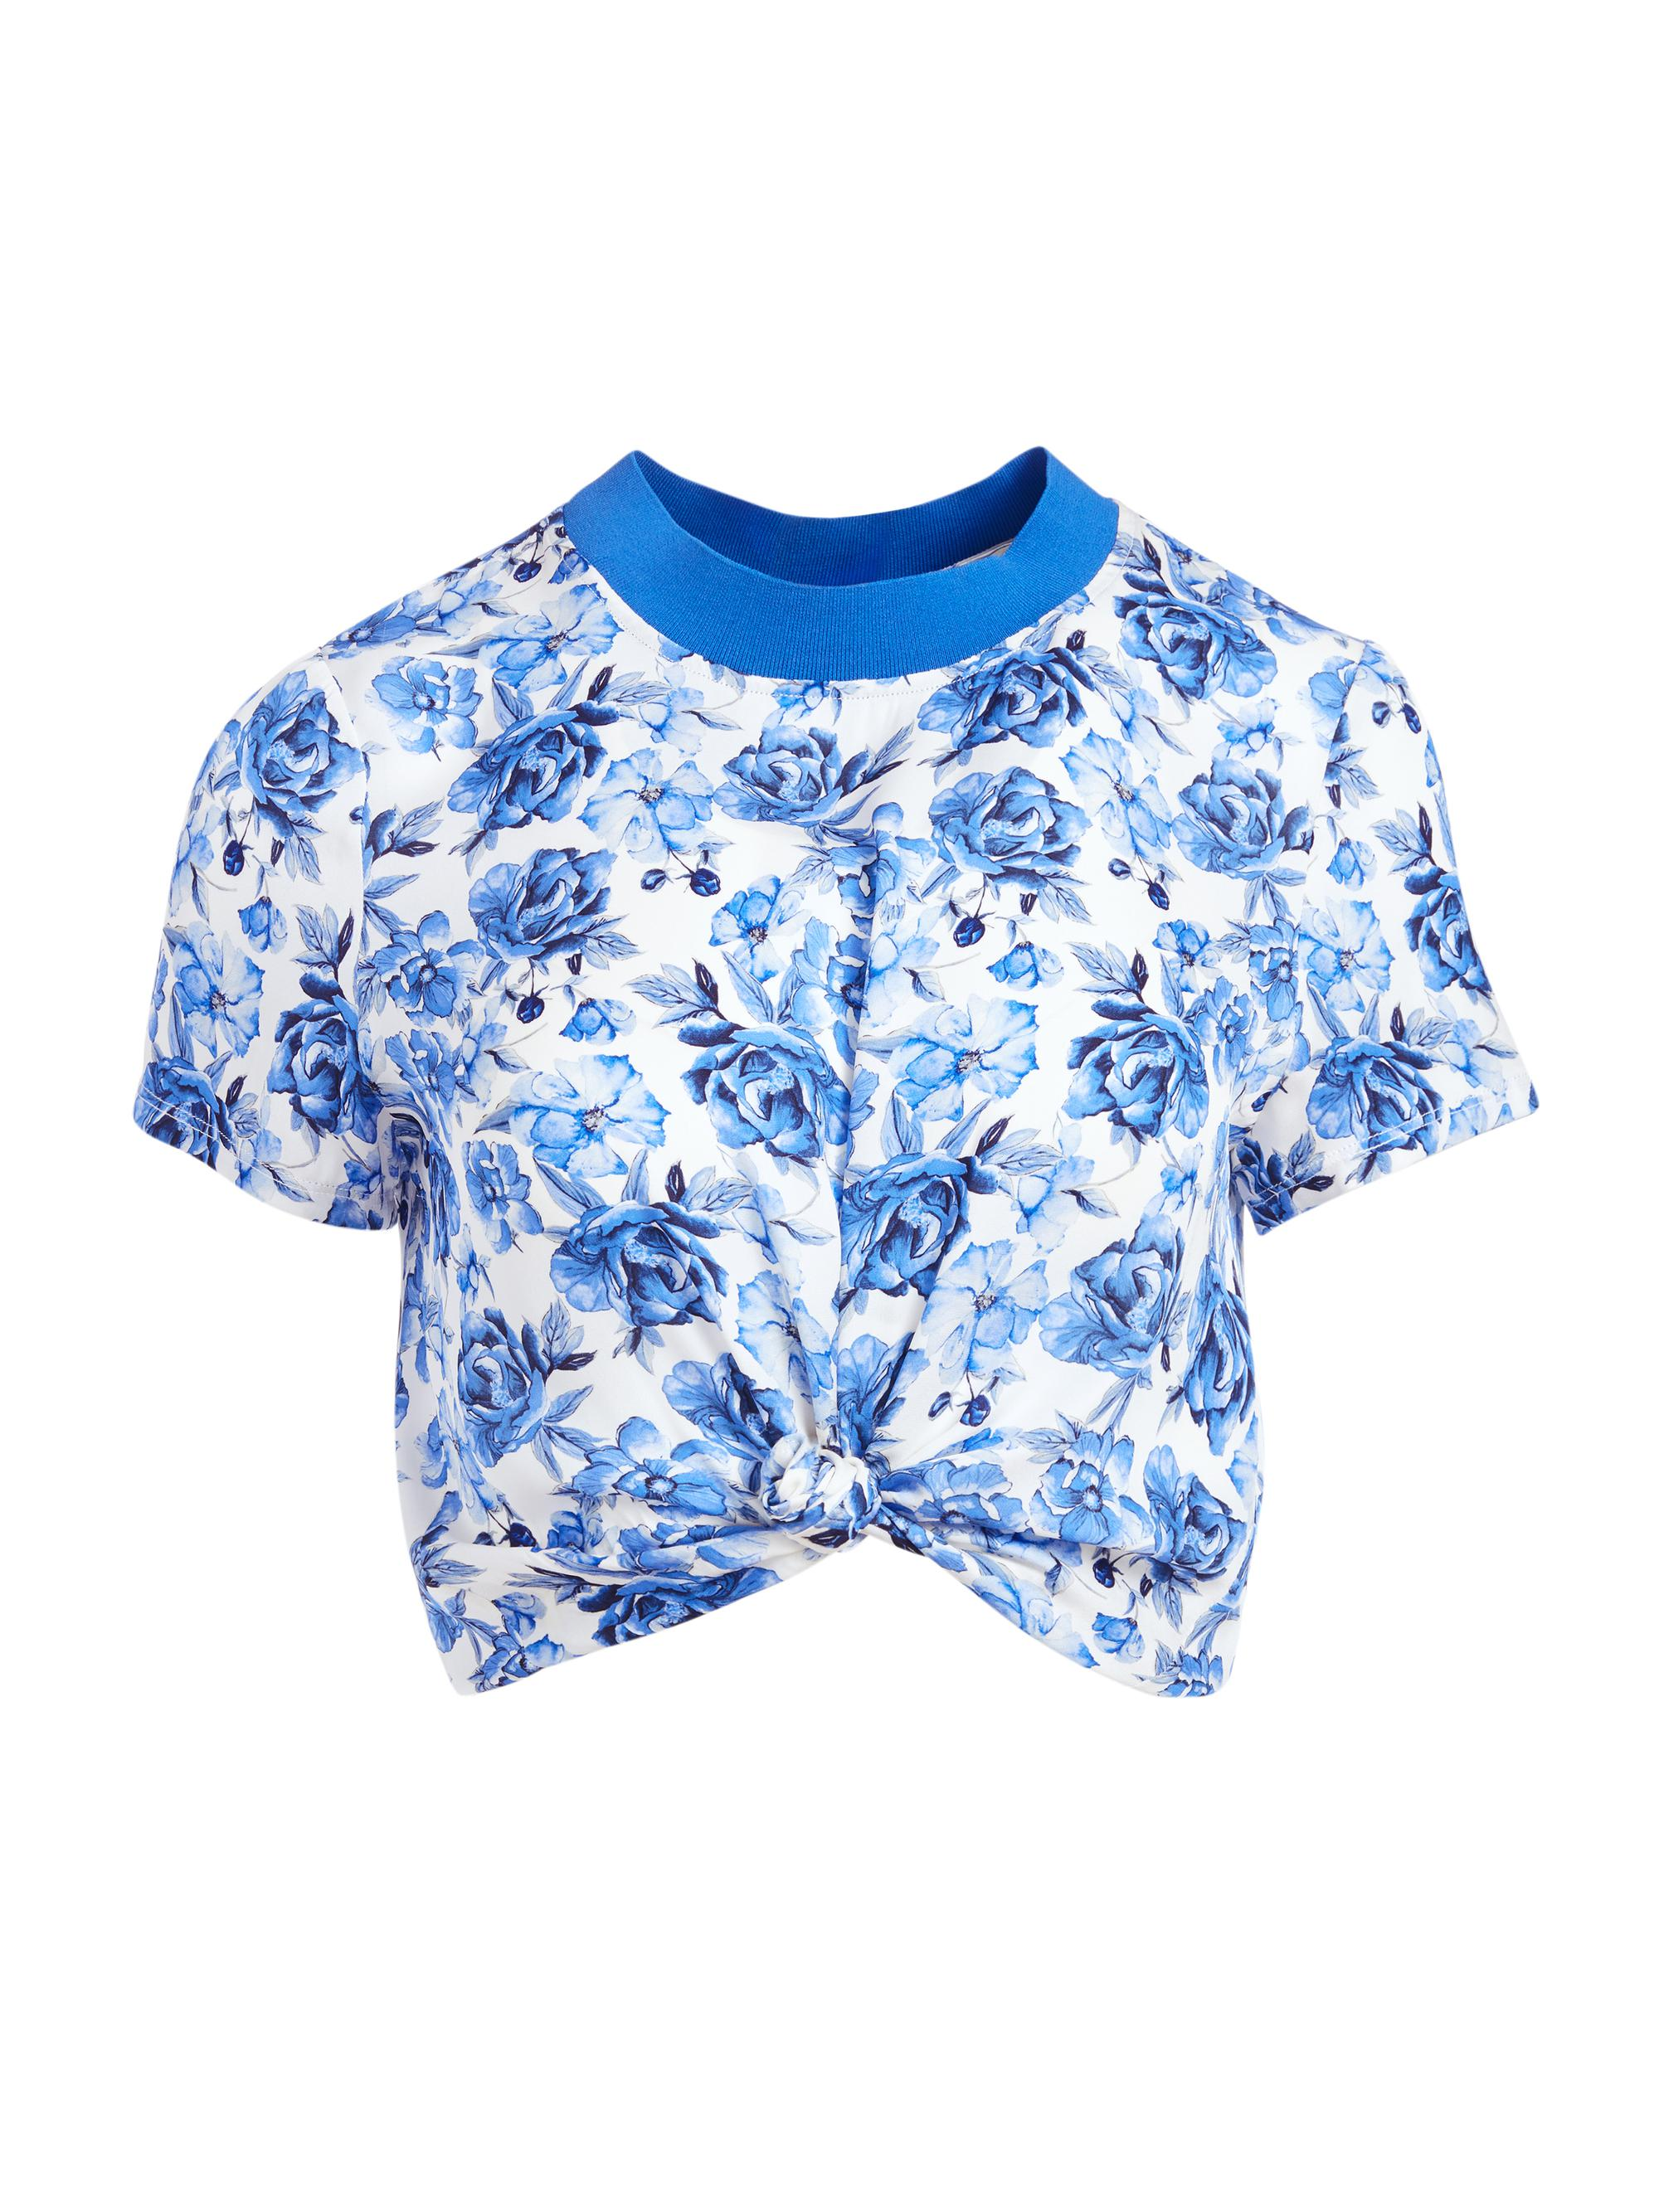 KANE FLORAL TIE FRONT TEE 4